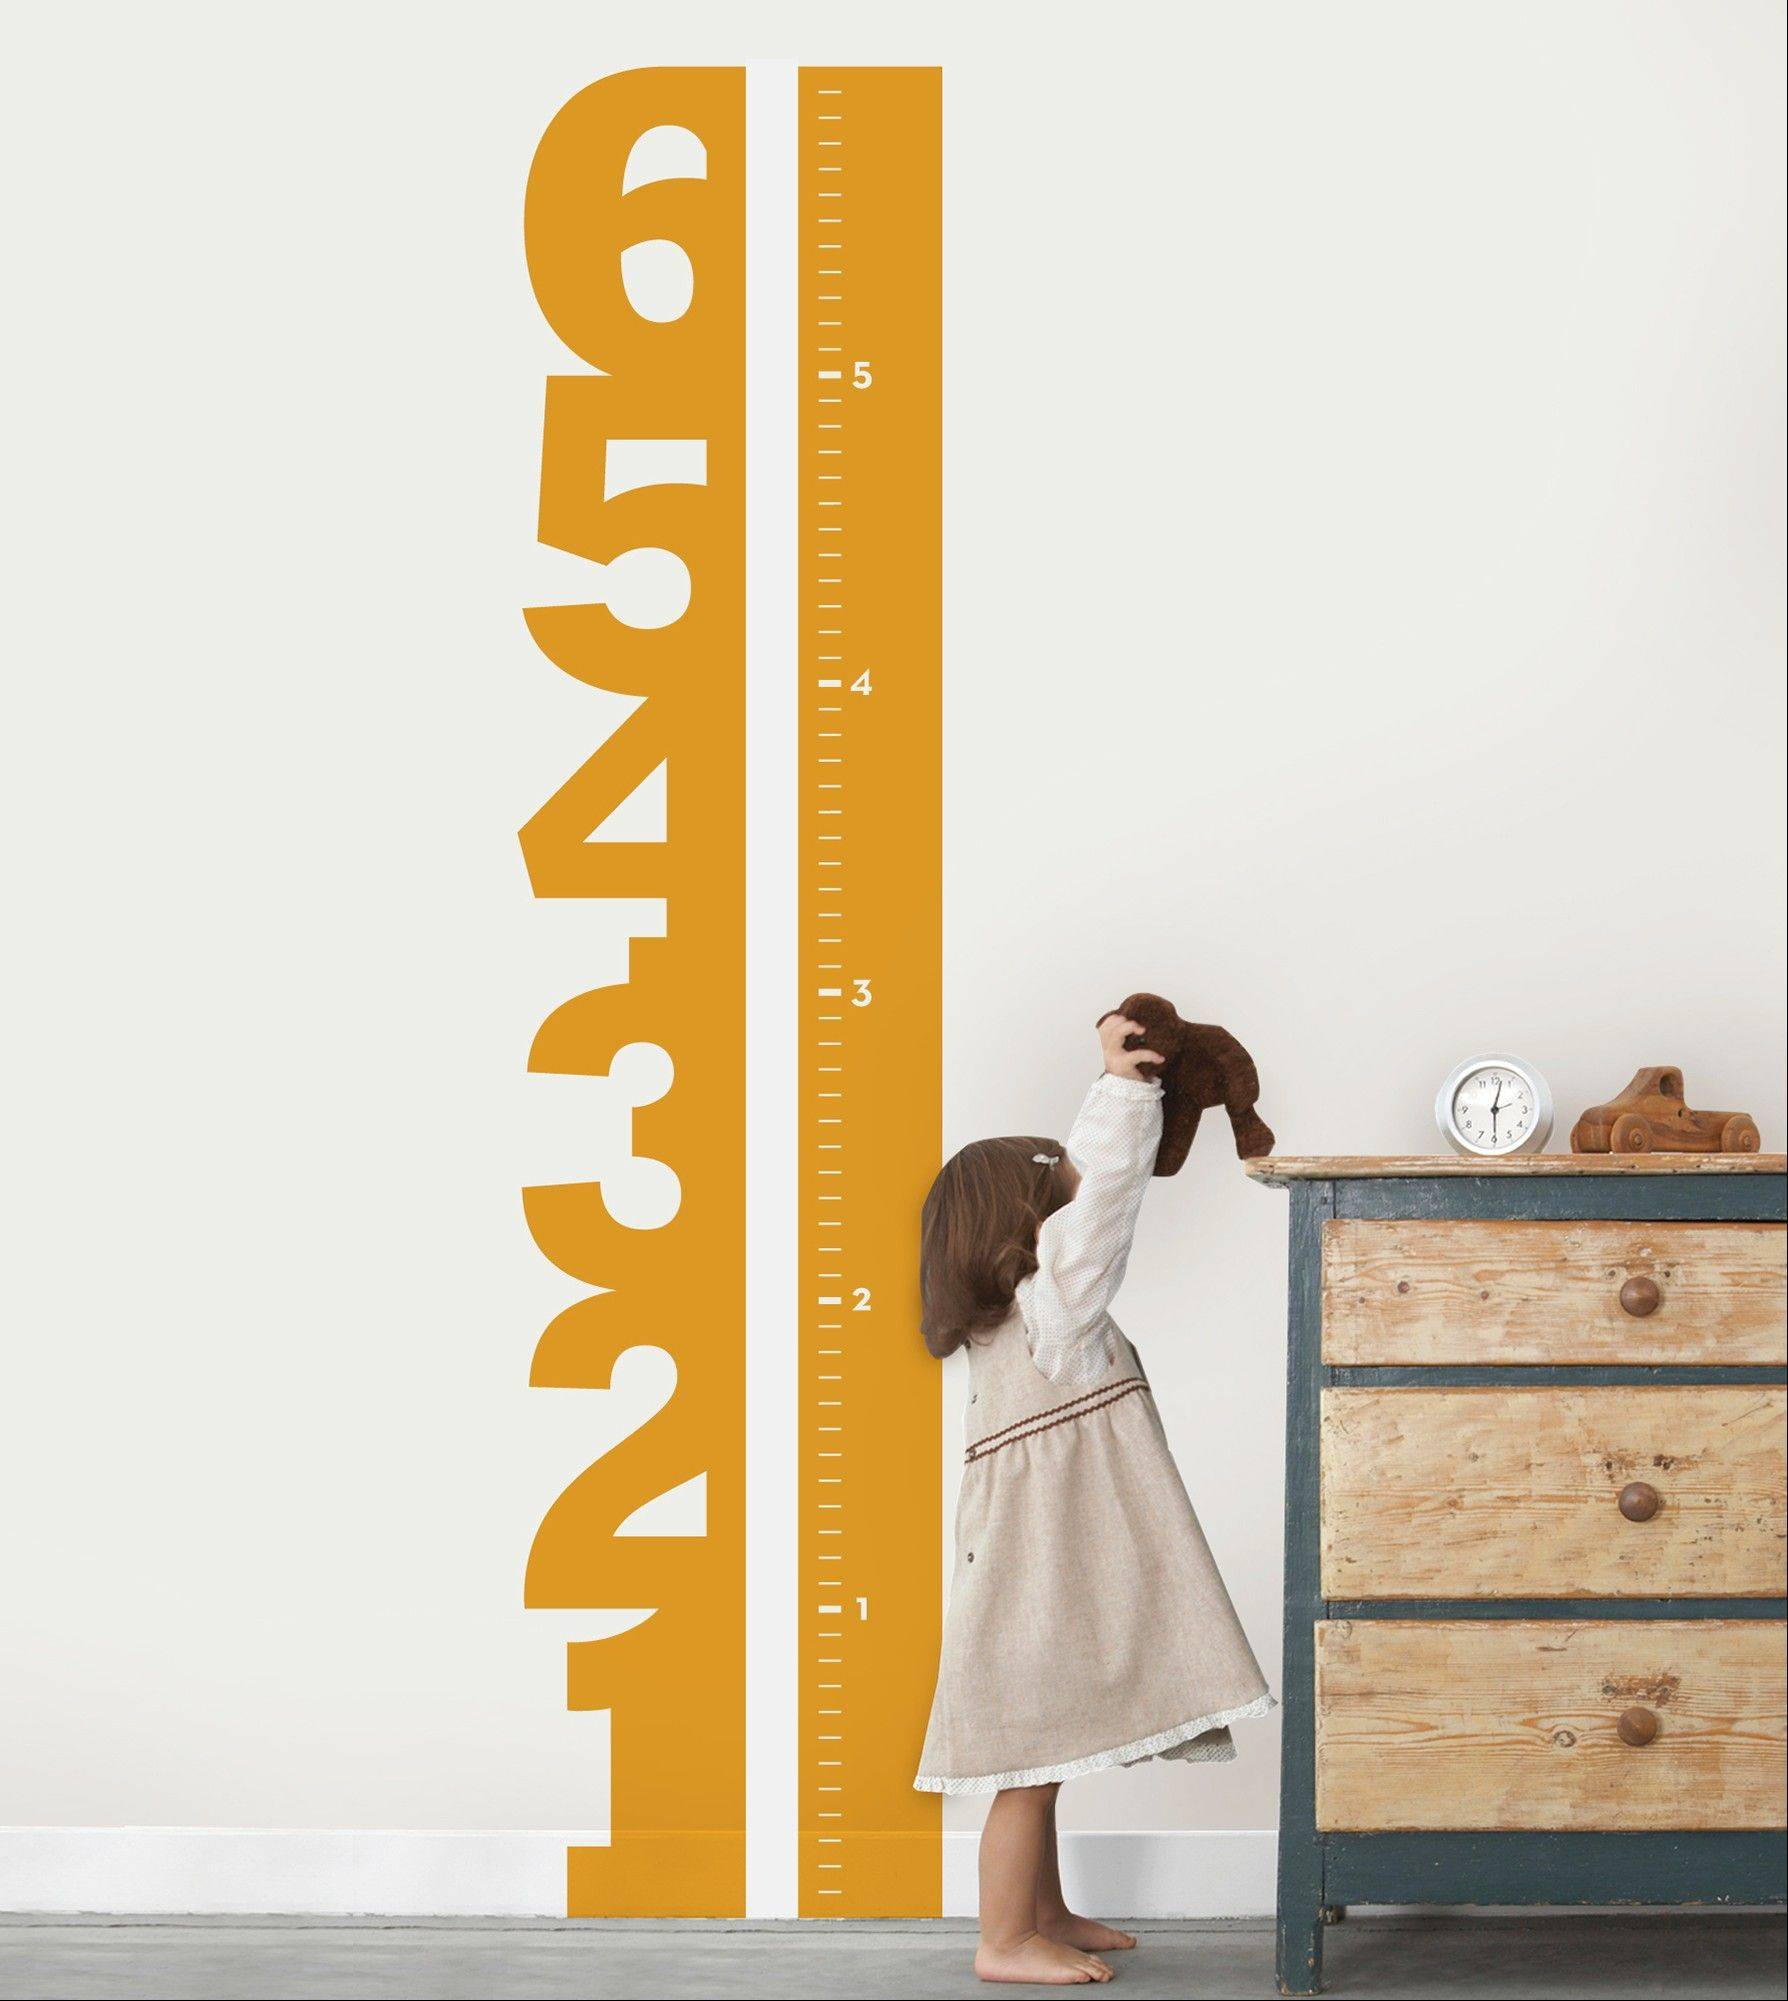 To put your walls to a practical purpose, track your child's growth with Simple Shapes' Growth Chart Numbers.